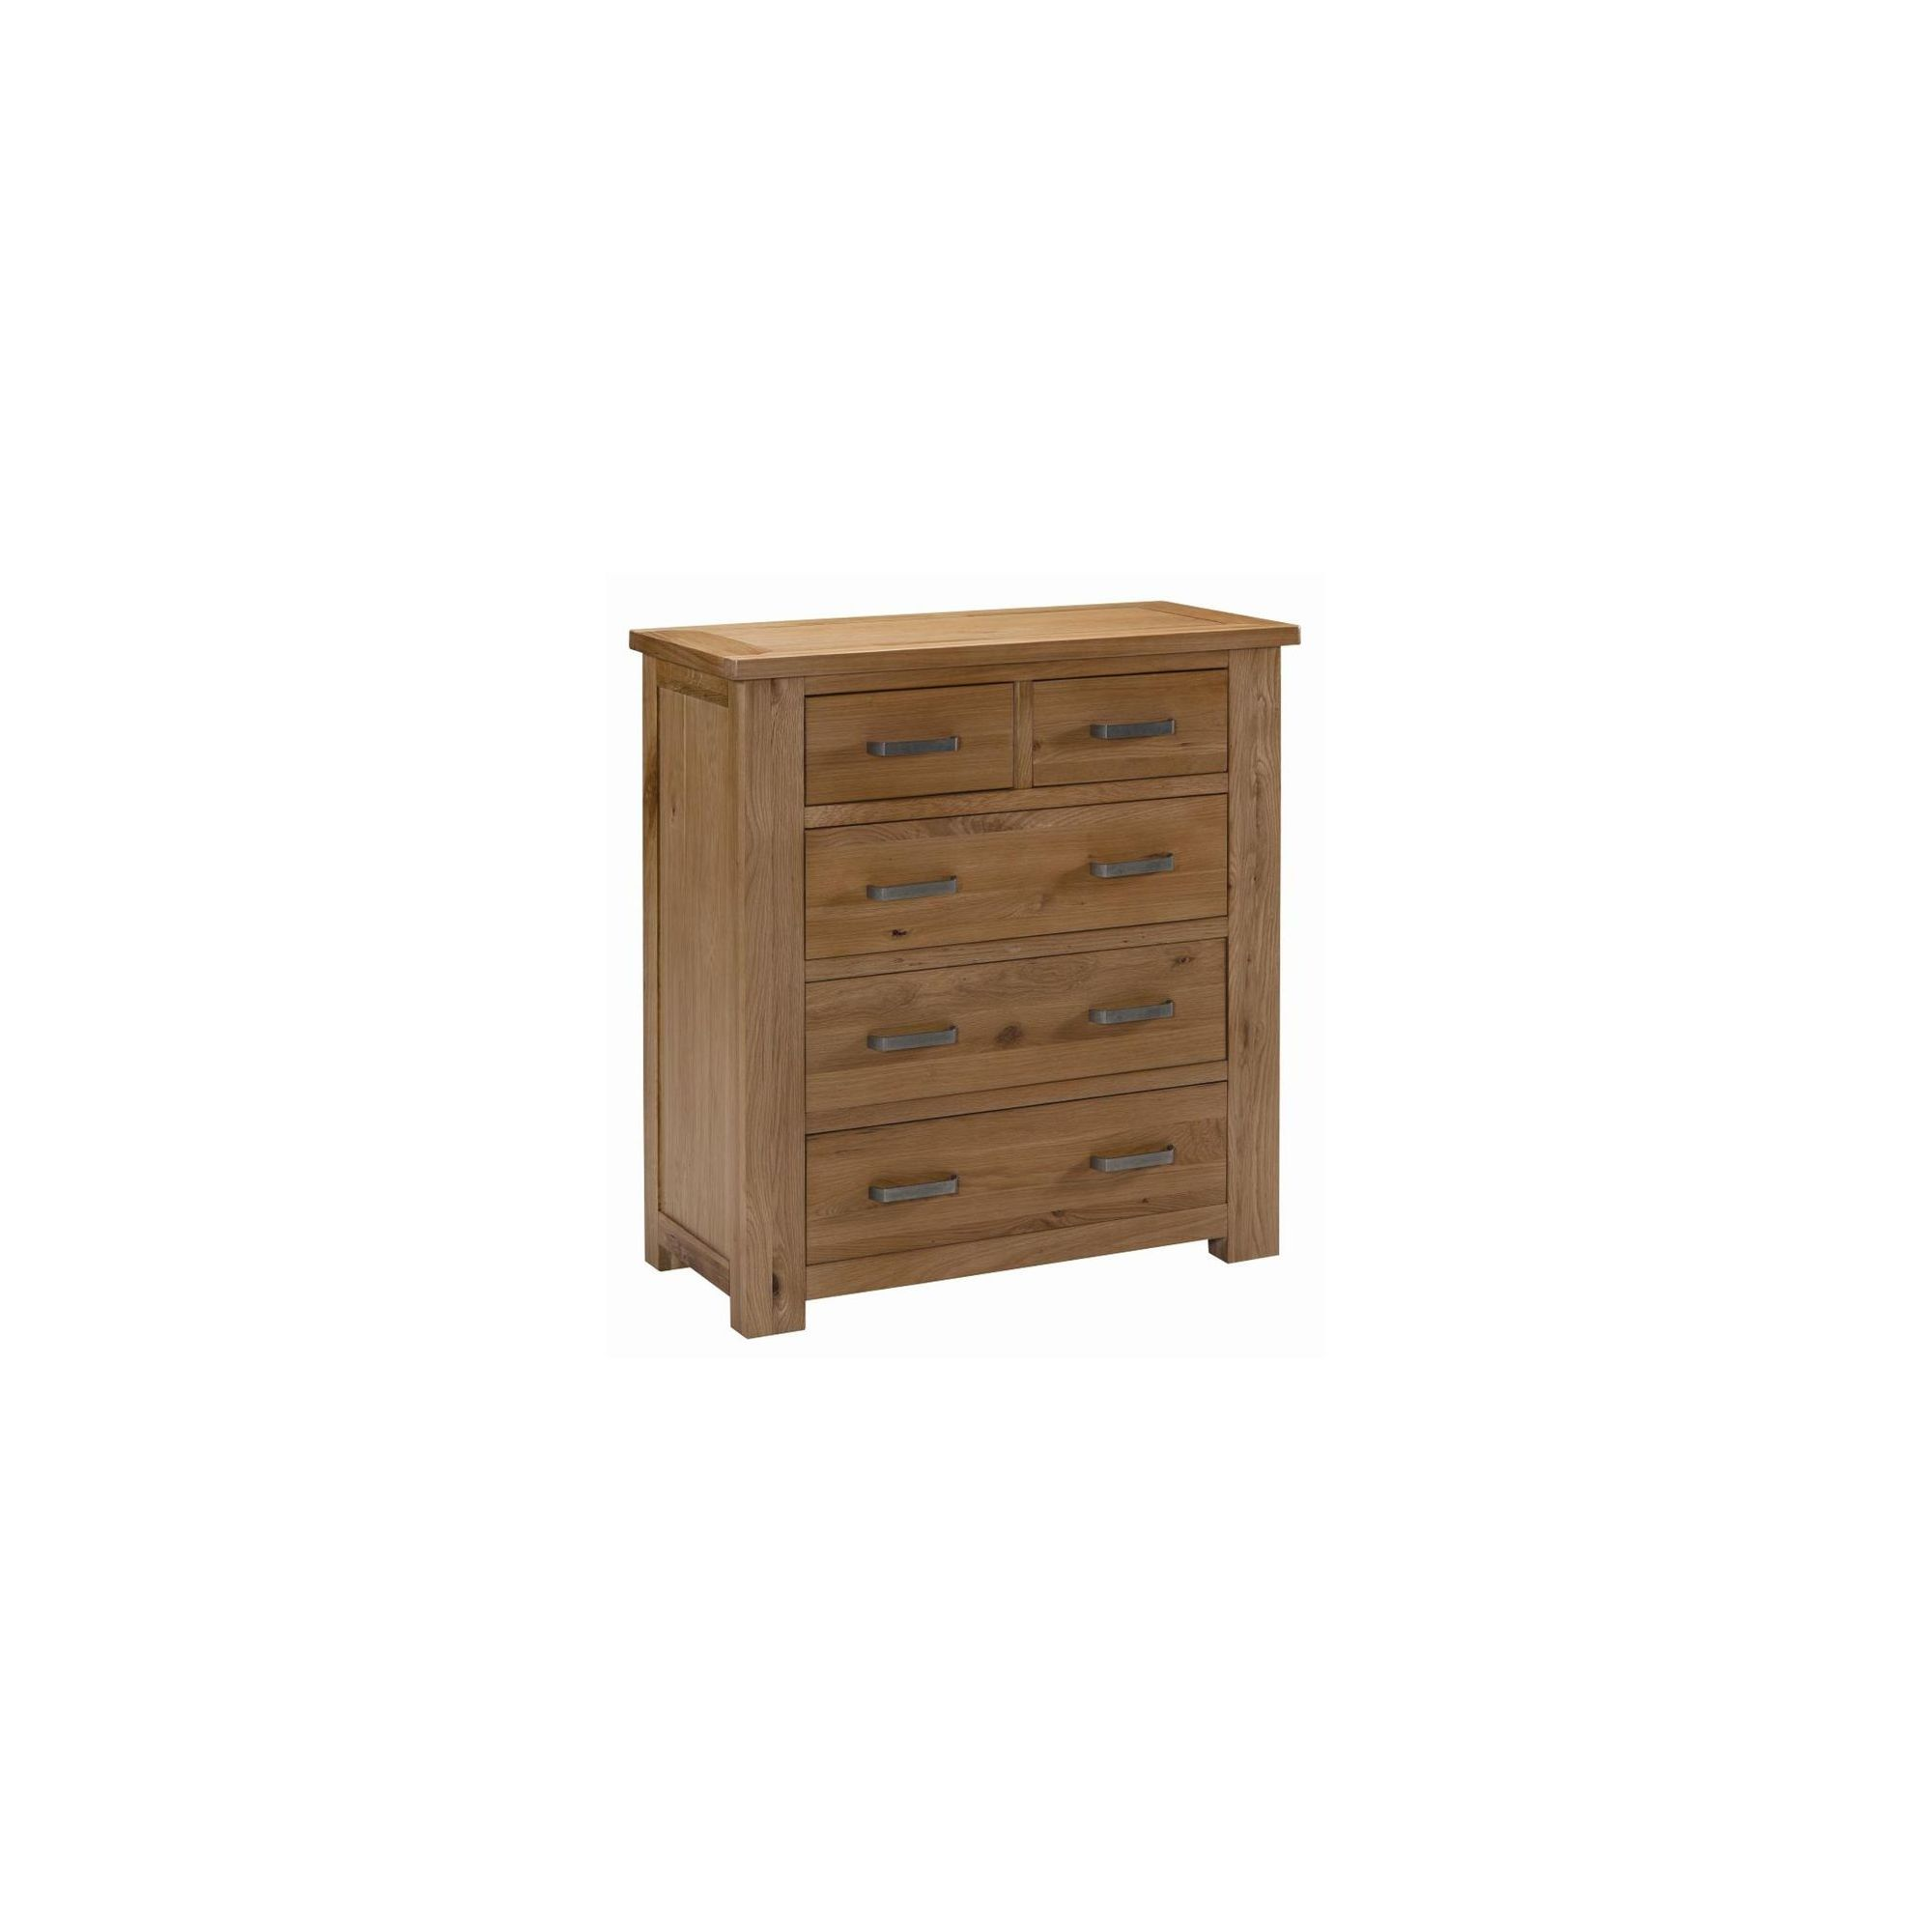 Kelburn Furniture Lyon 5 Drawer Chest at Tesco Direct